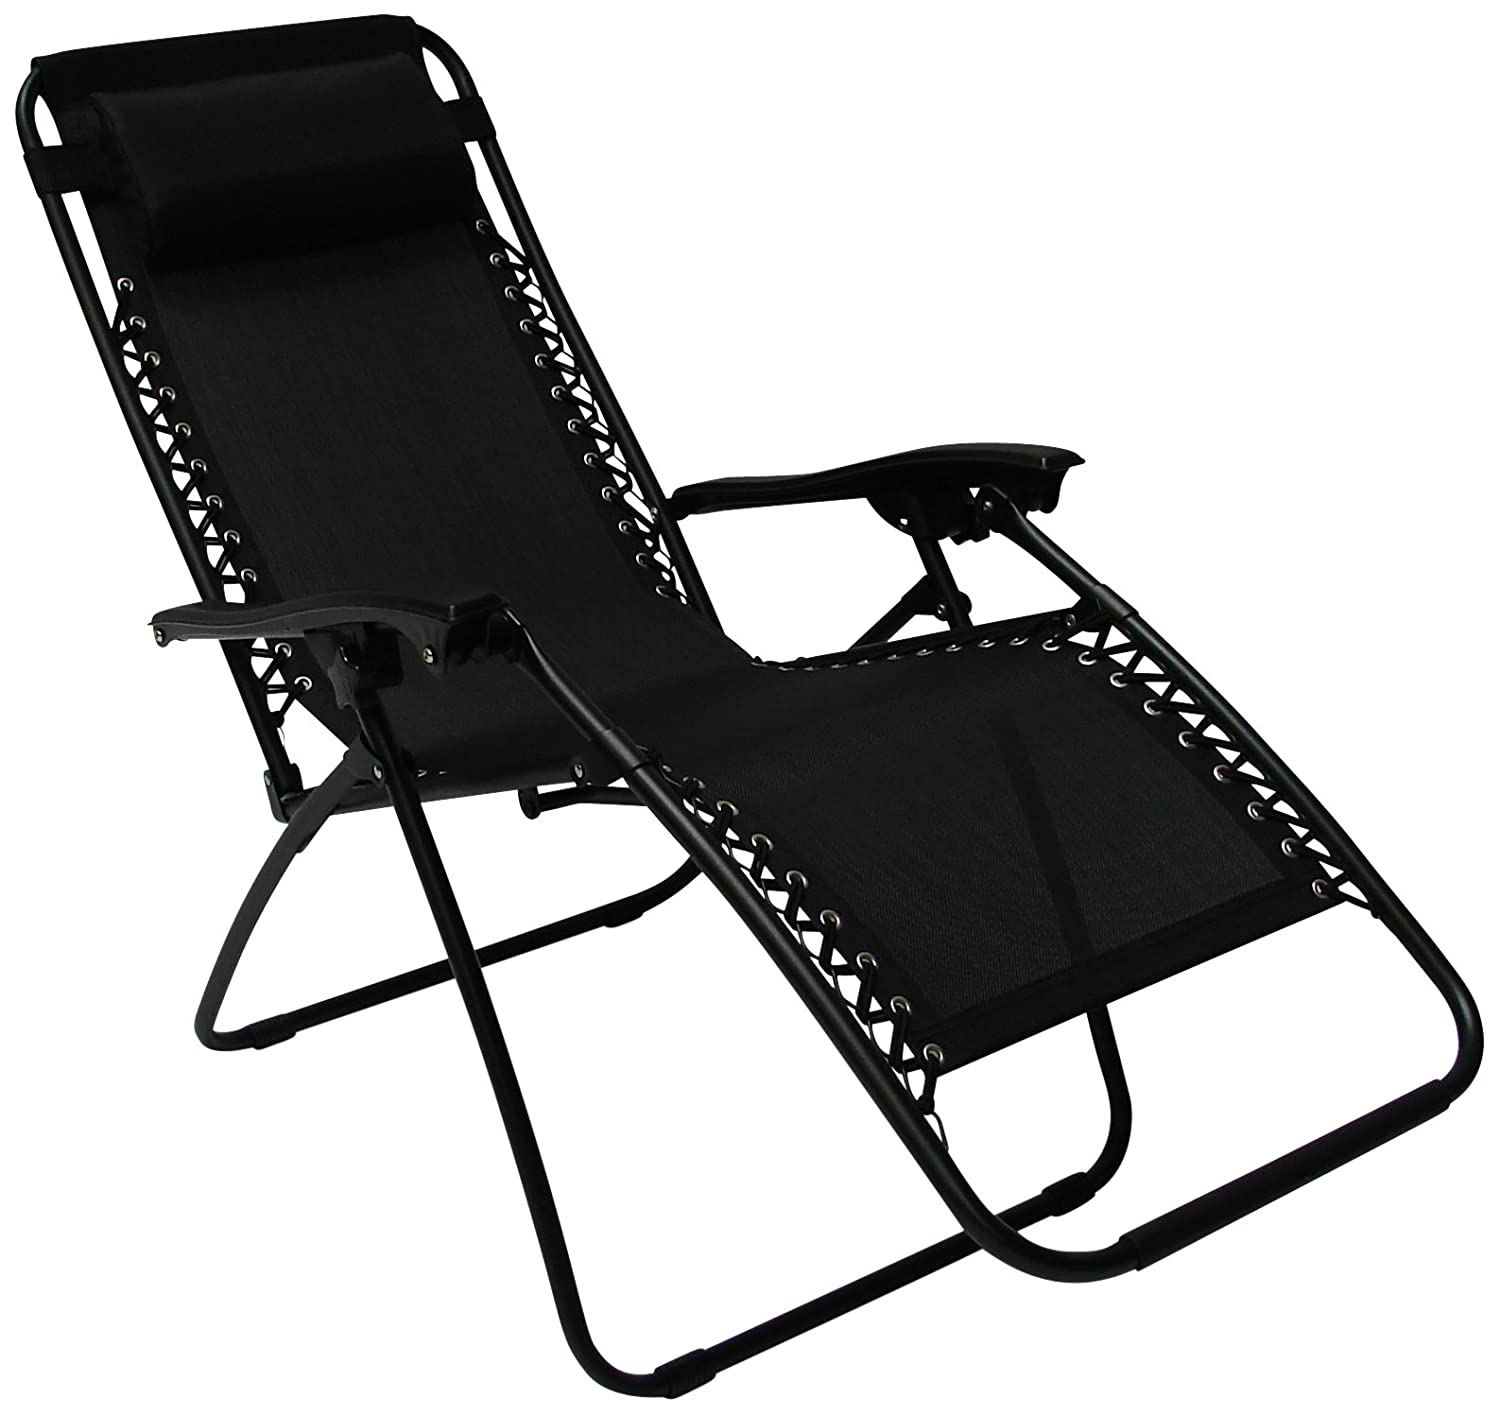 RoyalCraft Zero Gravity Relaxer Black Amazon Garden